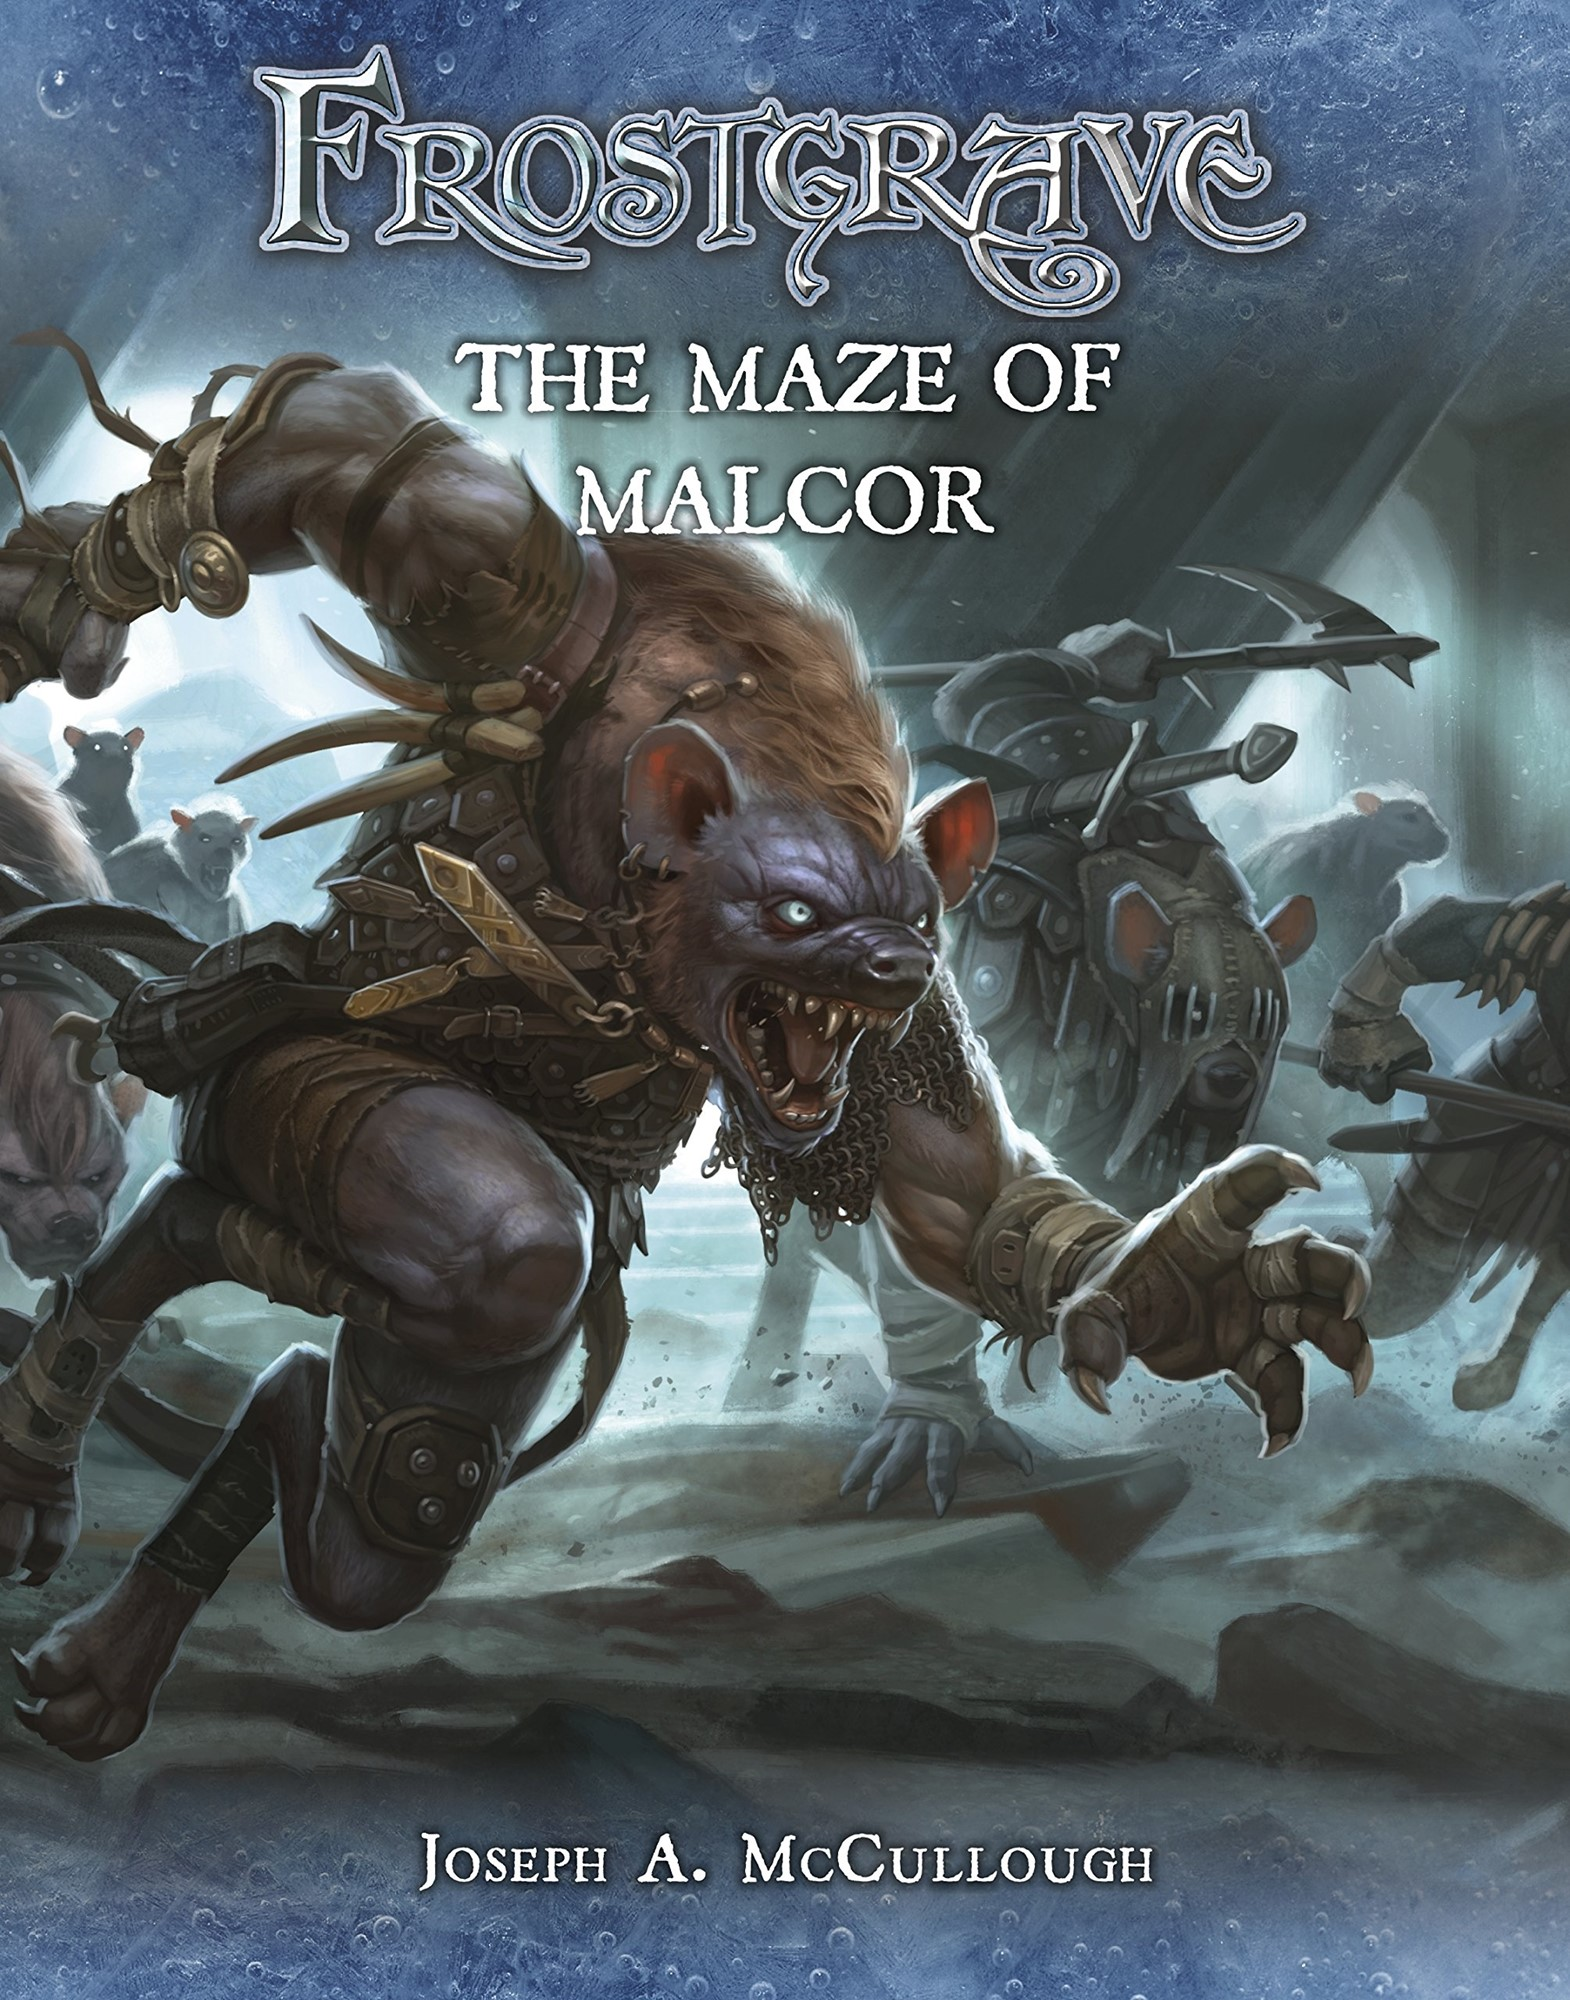 Browse Fantasy Miniatures Atomic Empire Ninja Division Painting Cerci Speed Circuit Frostgrave The Maze Of Malcor By Osprey Graphics